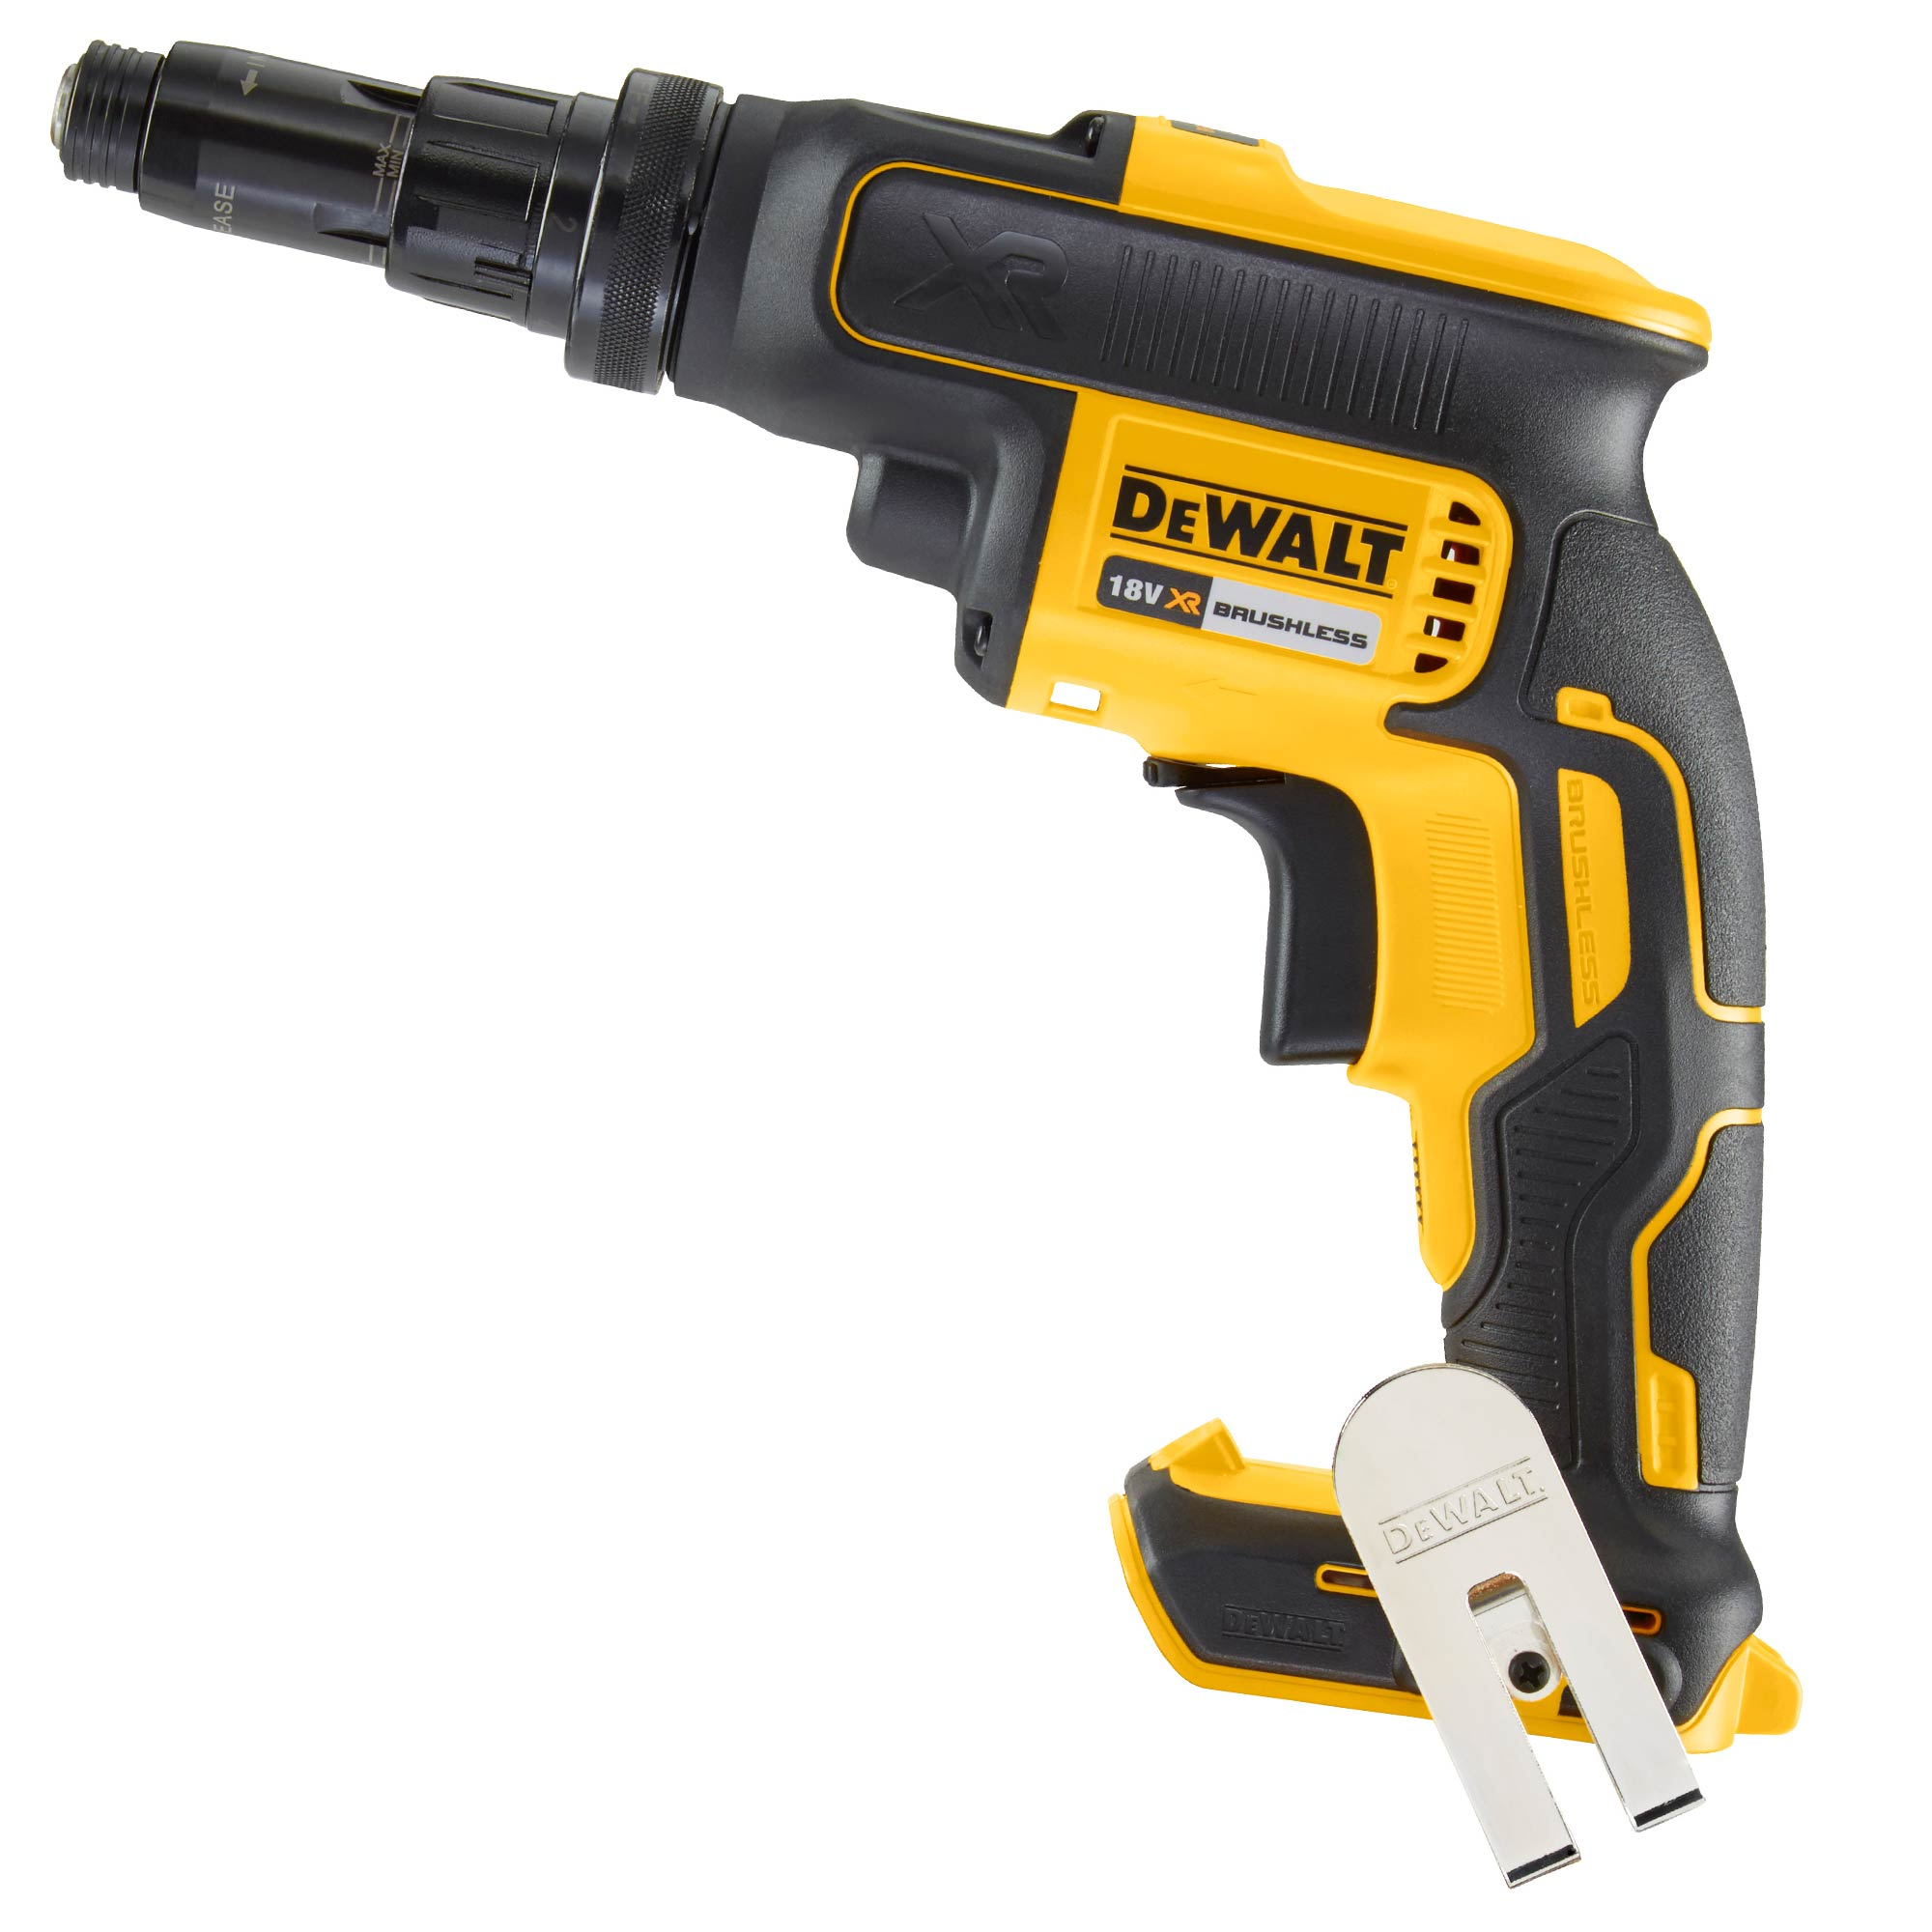 dewalt screw gun. dewalt dcf622n 18v li-ion xr self-drilling screwdriver (body)_alt_image_1 screw gun u